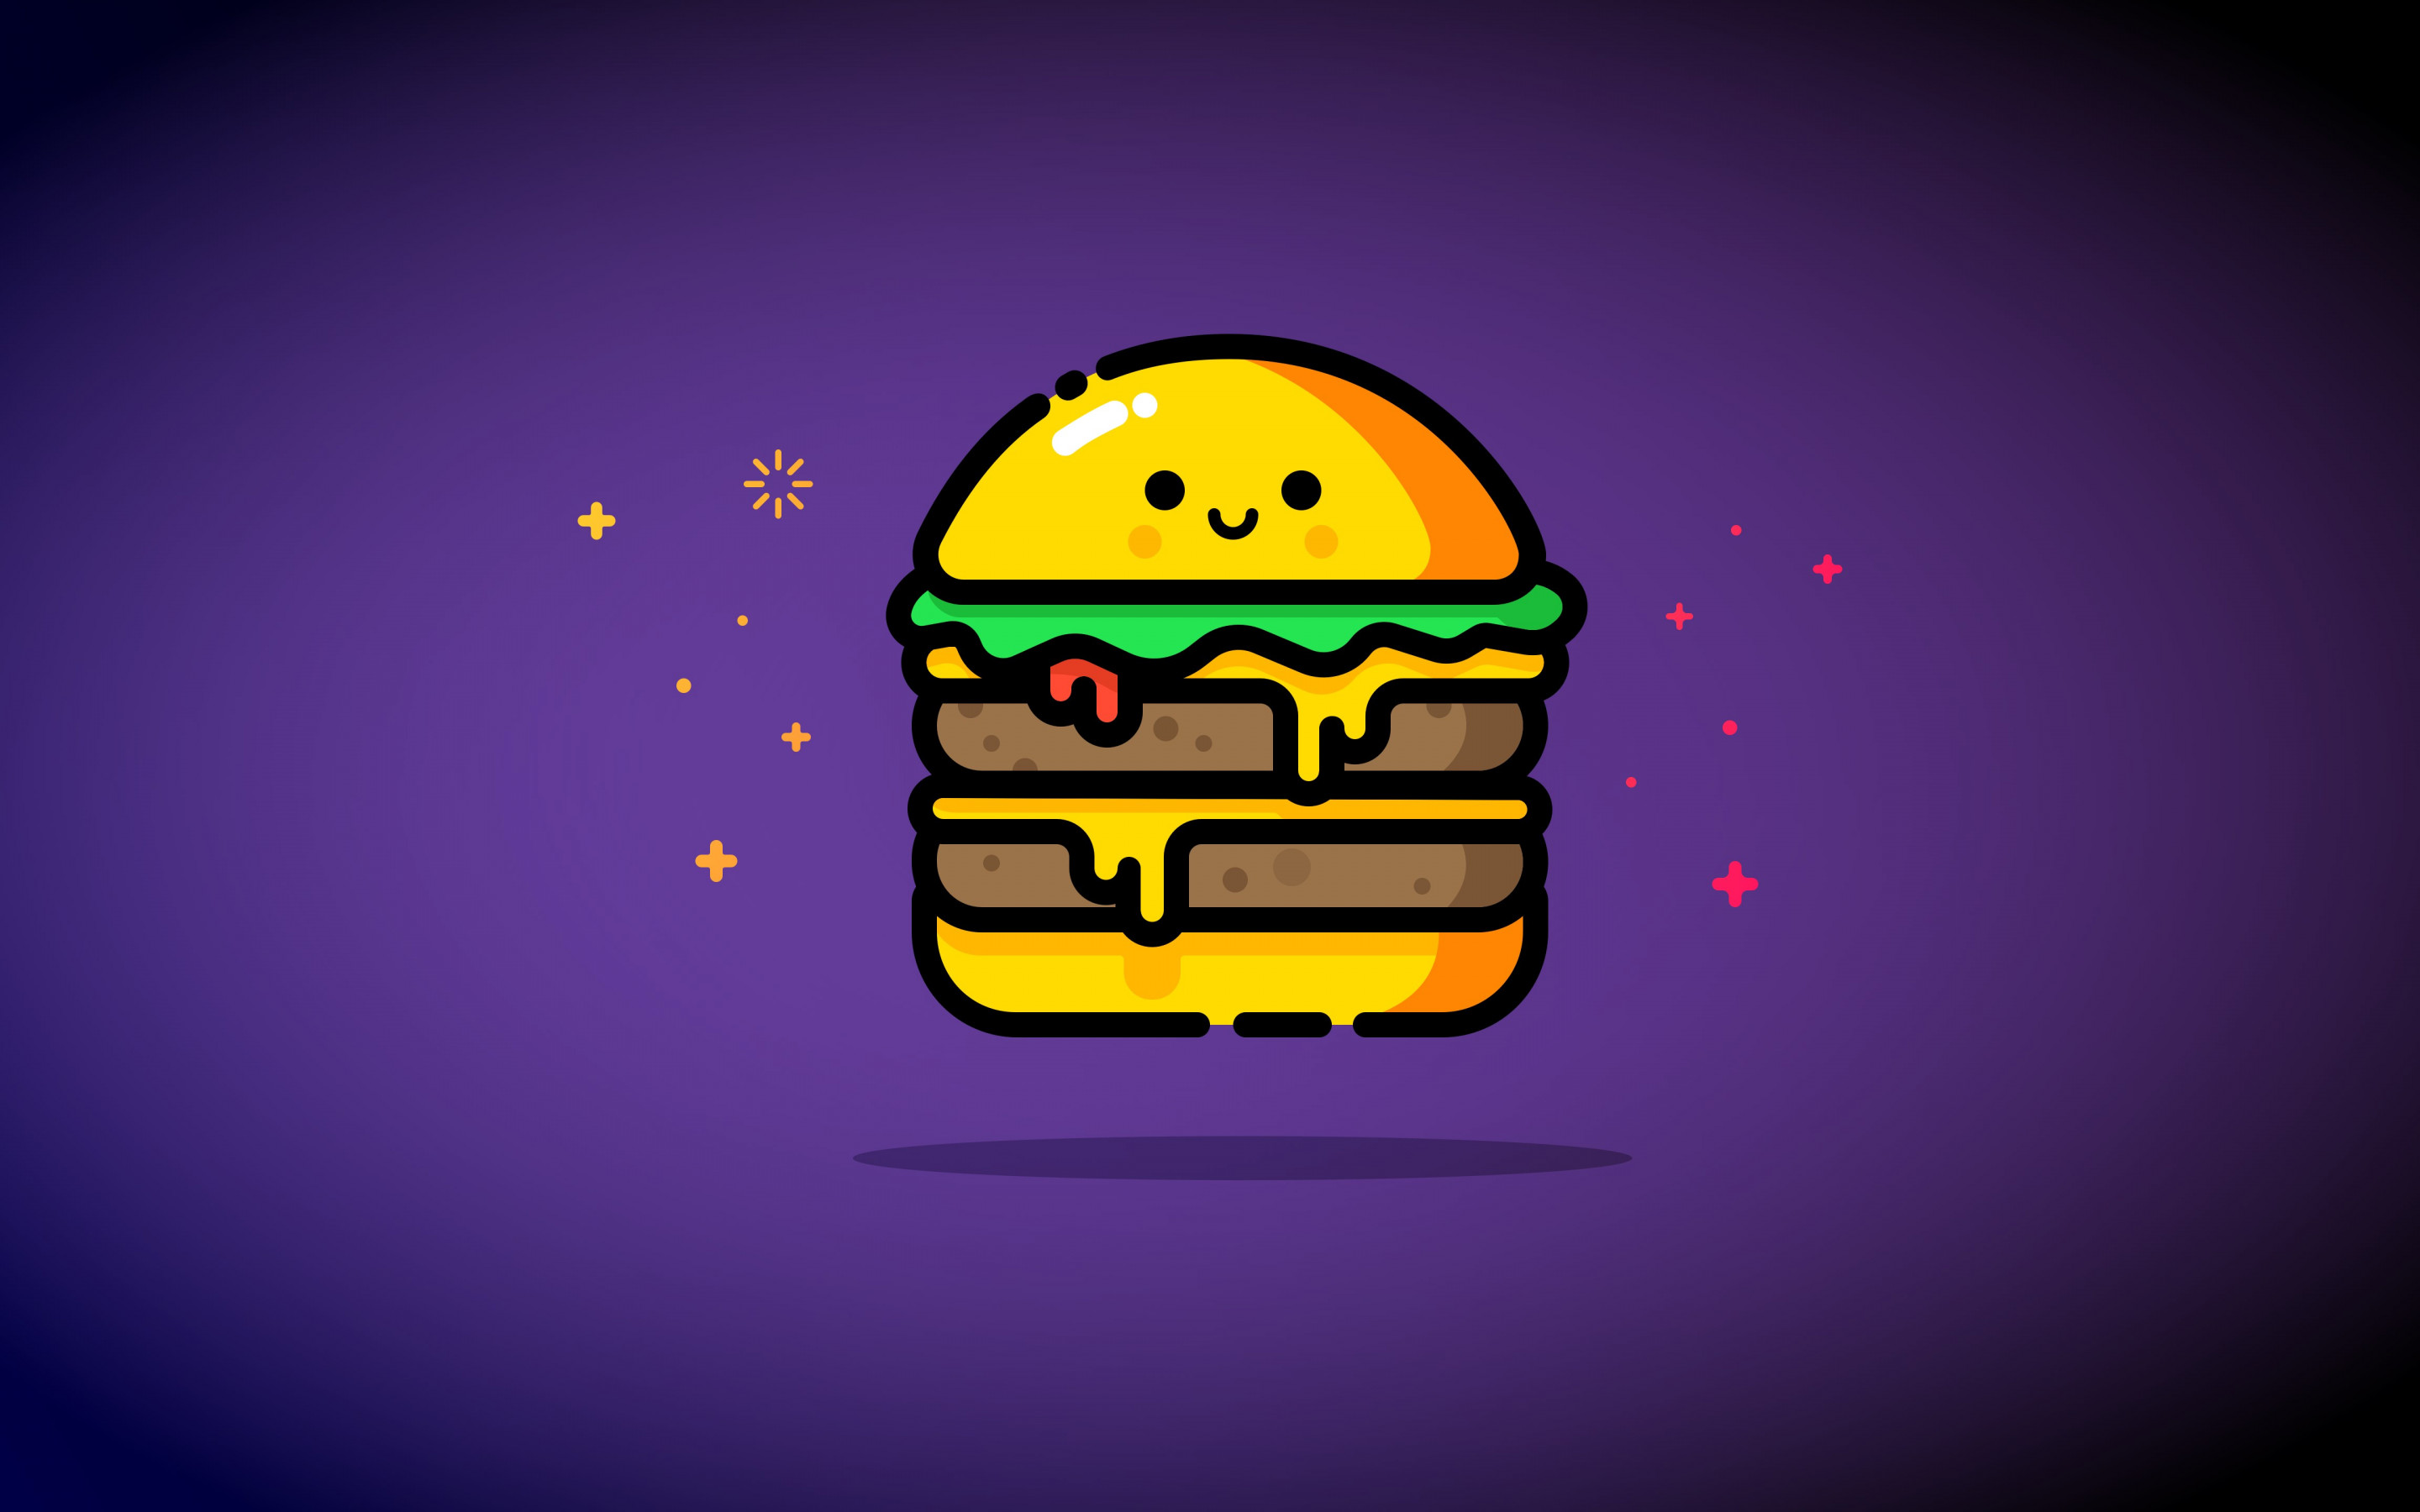 Double cheese wallpaper 2880x1800